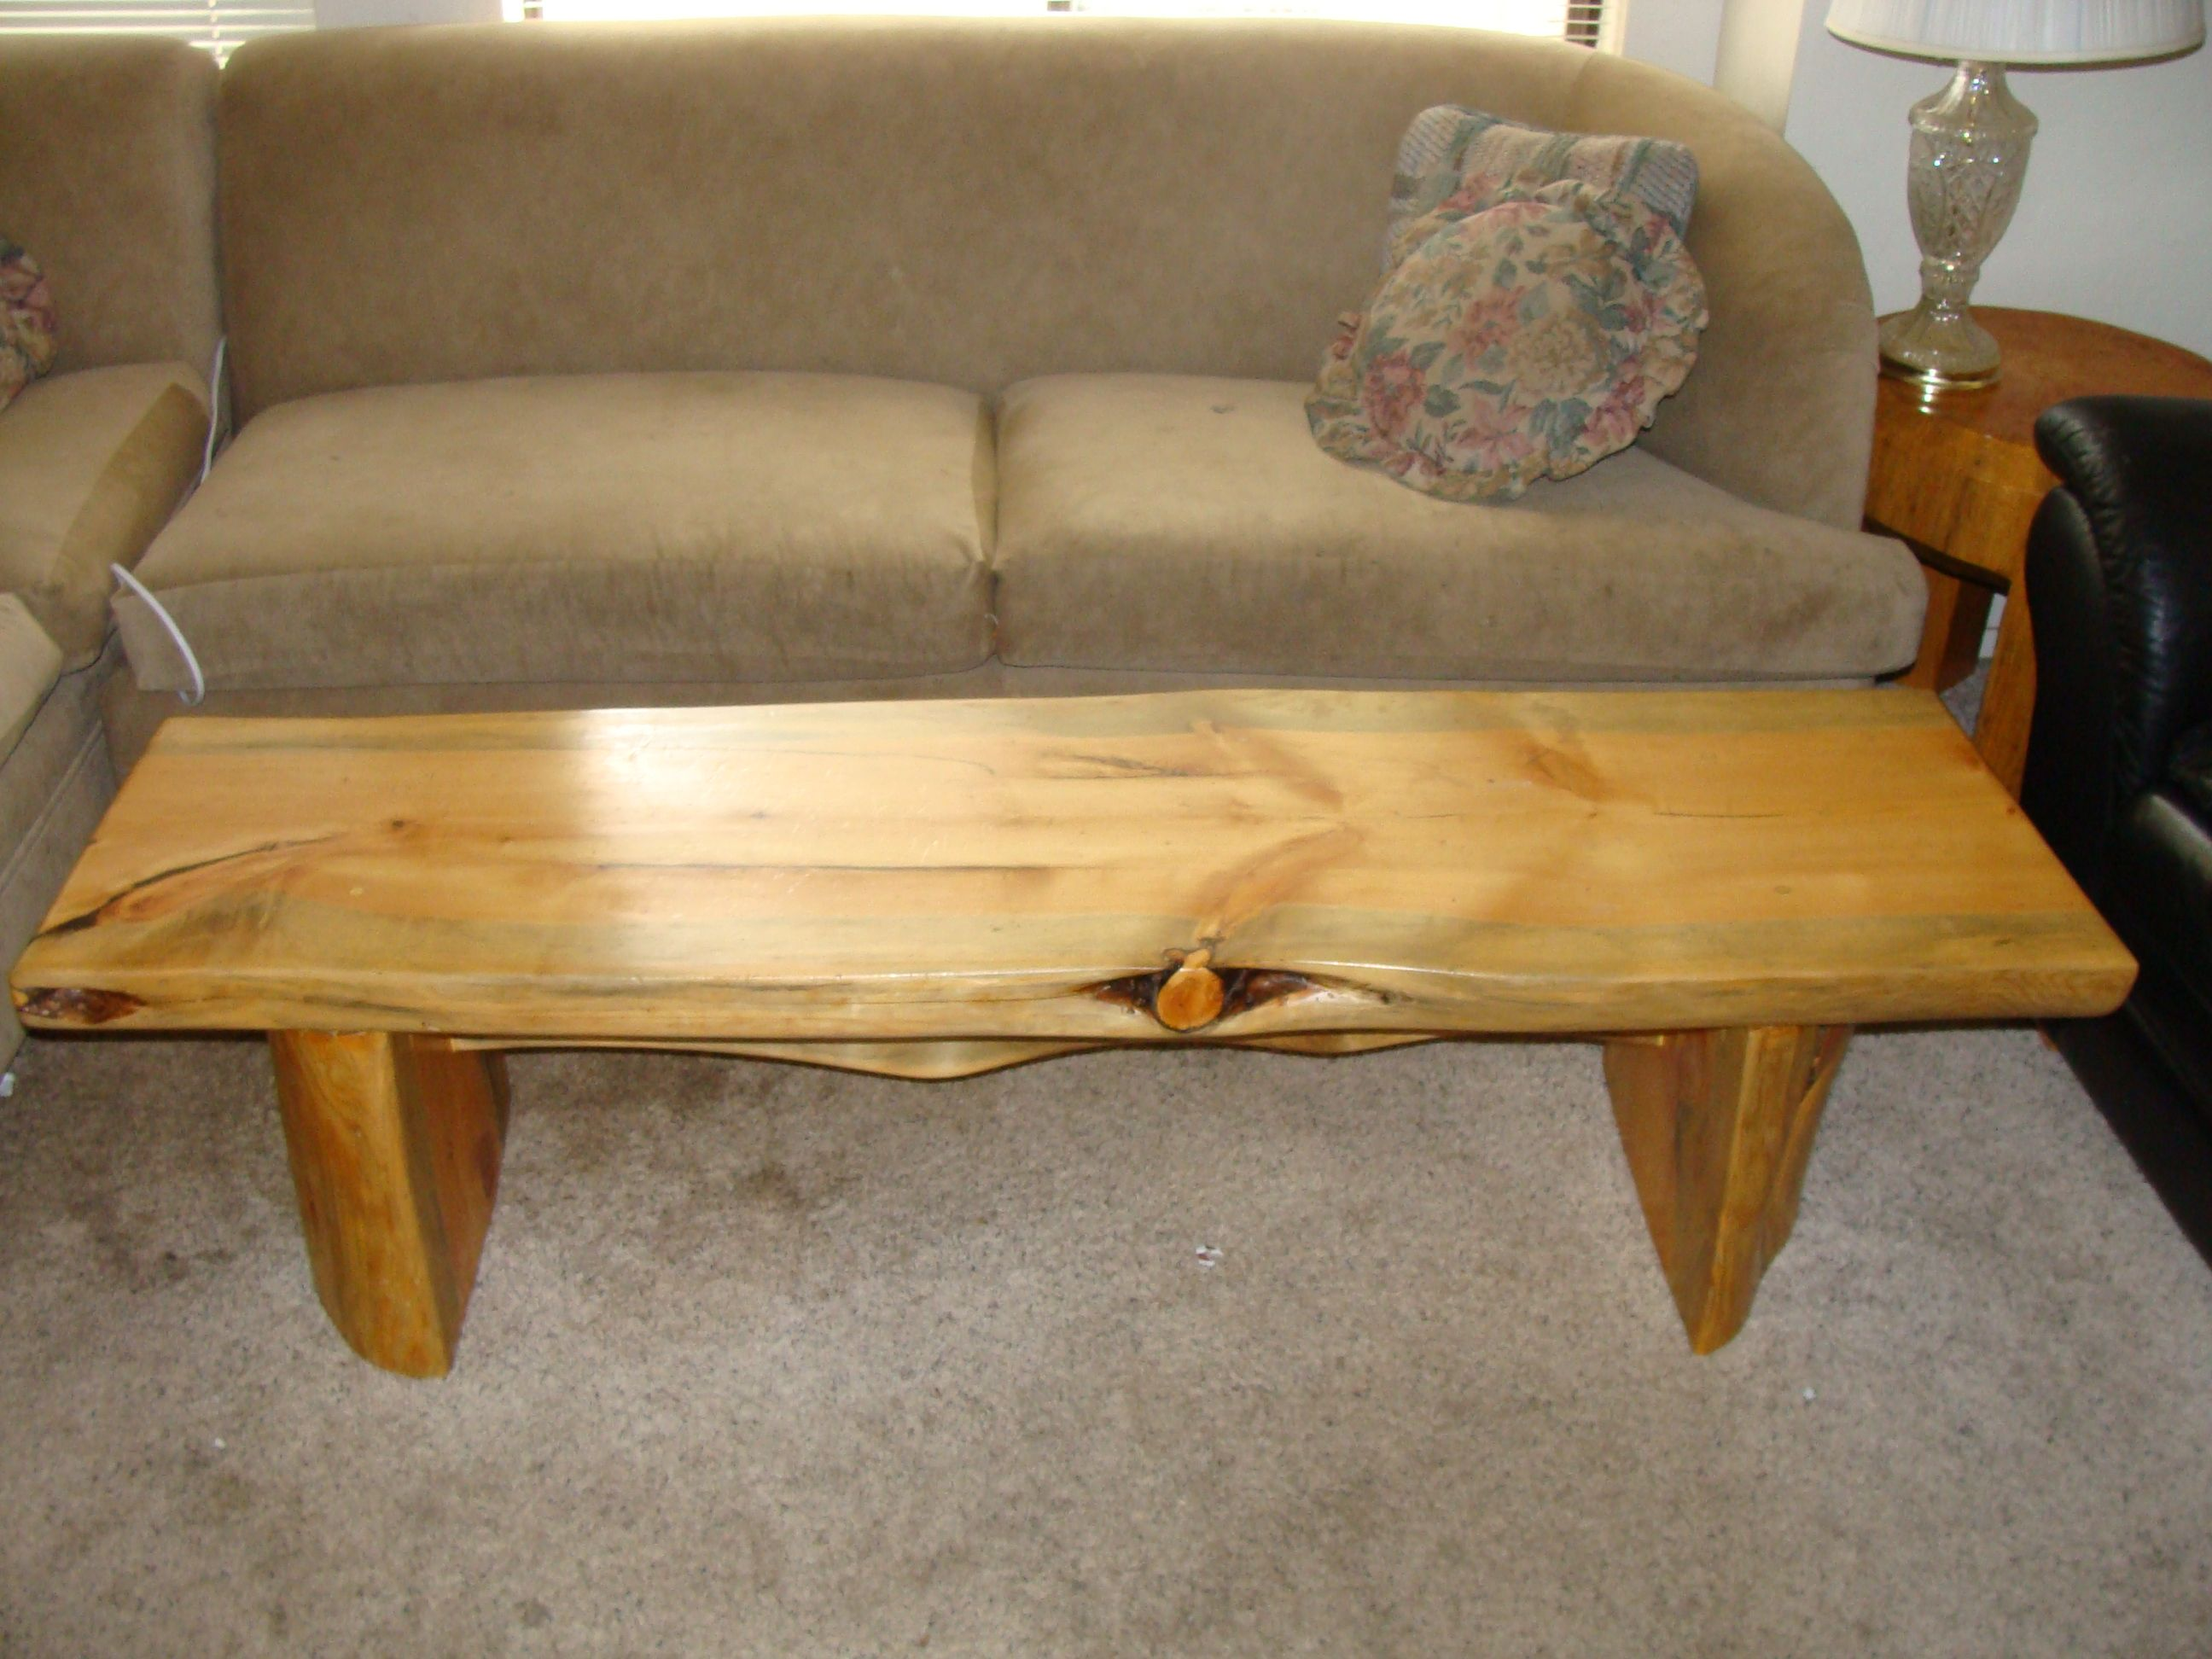 6 Knotty Pine Coffee Table